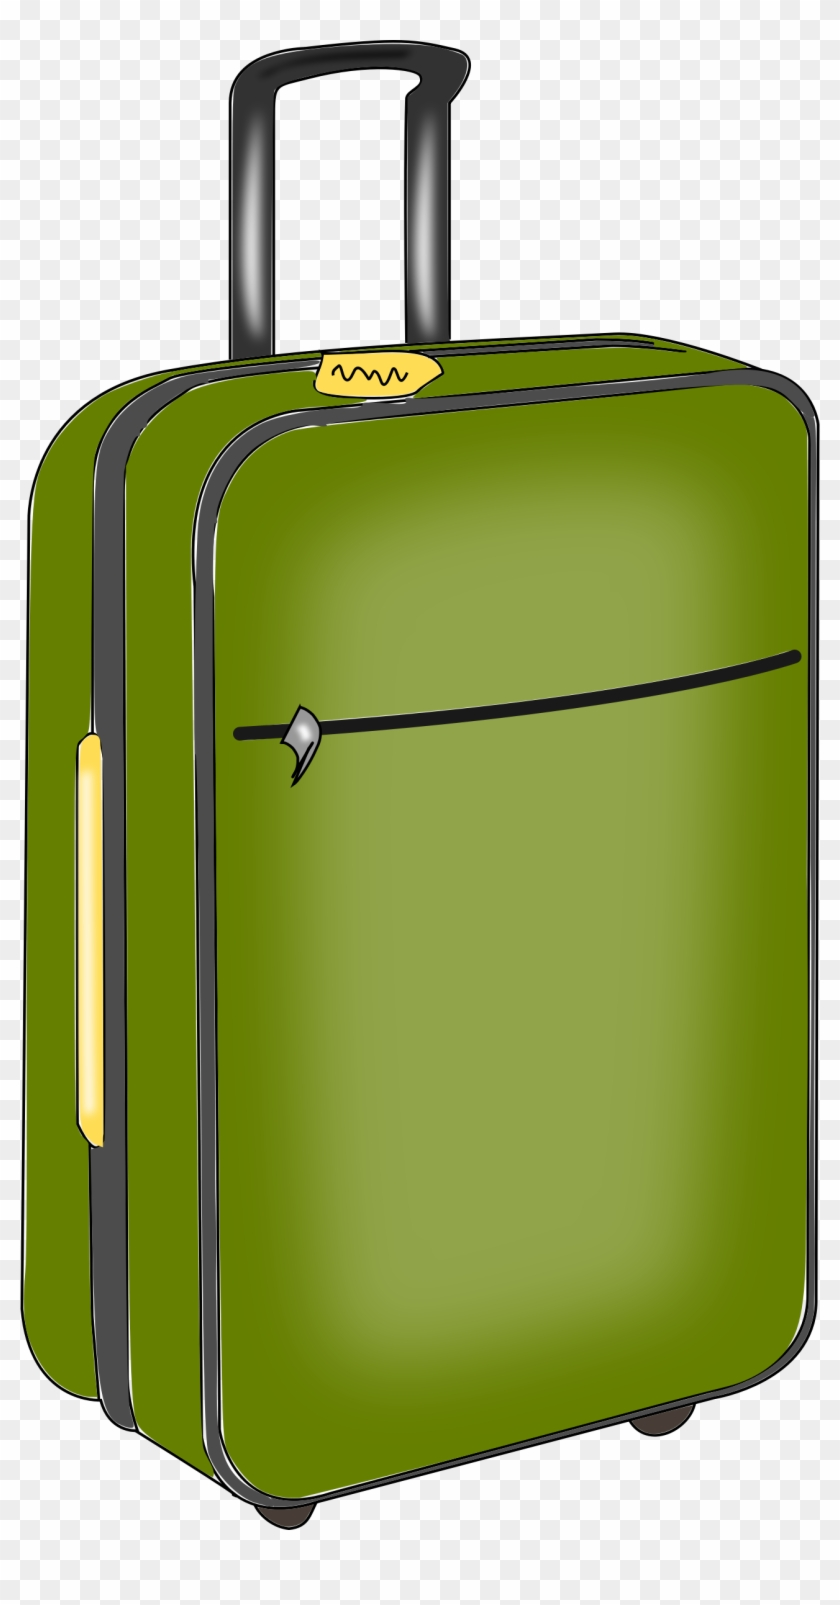 Free Luggage Clipart hand luggage, Download Free Clip Art on Owips.com.